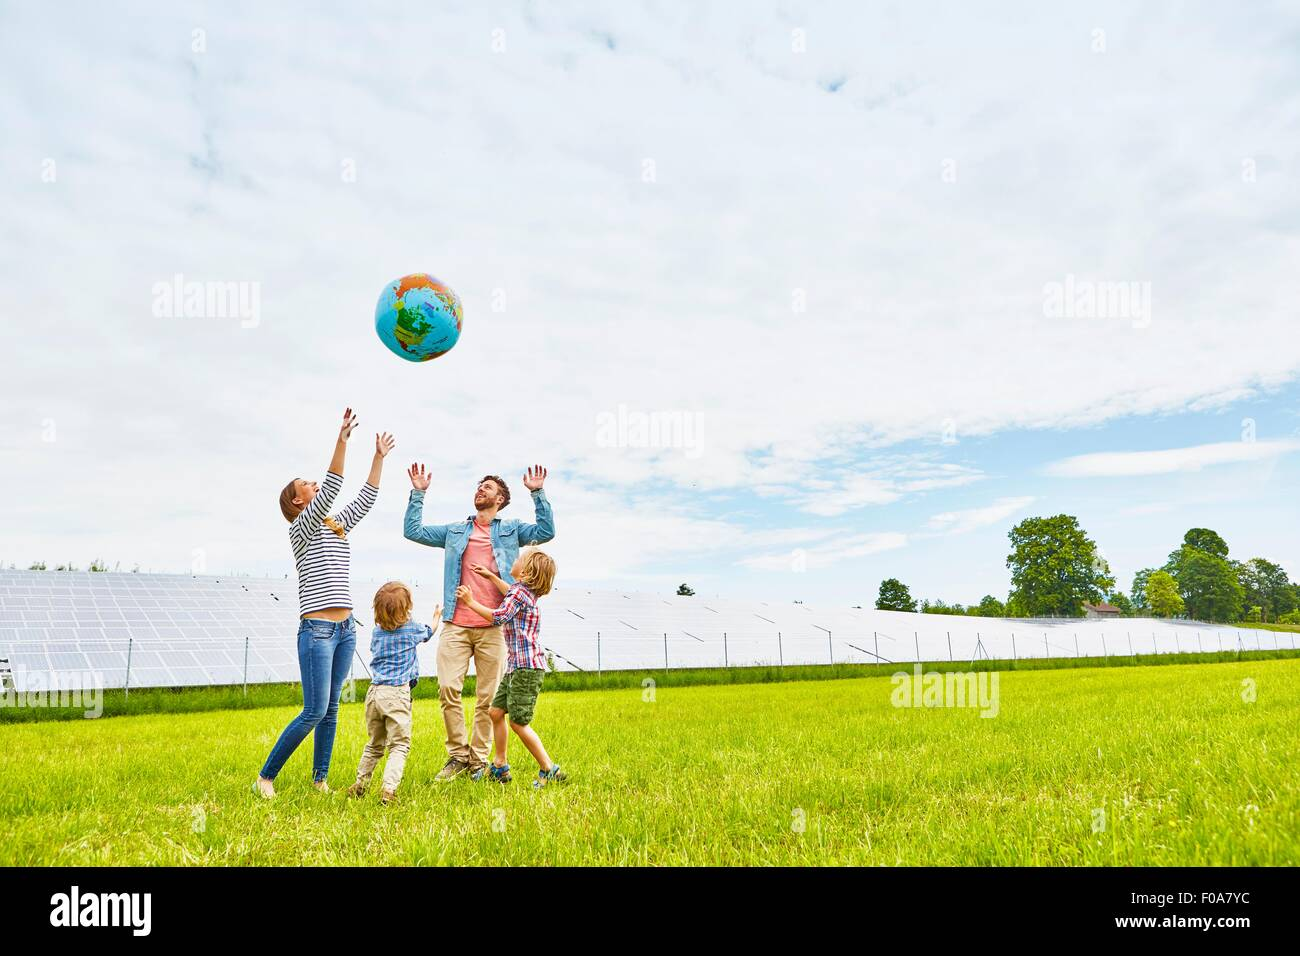 Young family playing with inflatable ball, on field, next to solar farm - Stock Image